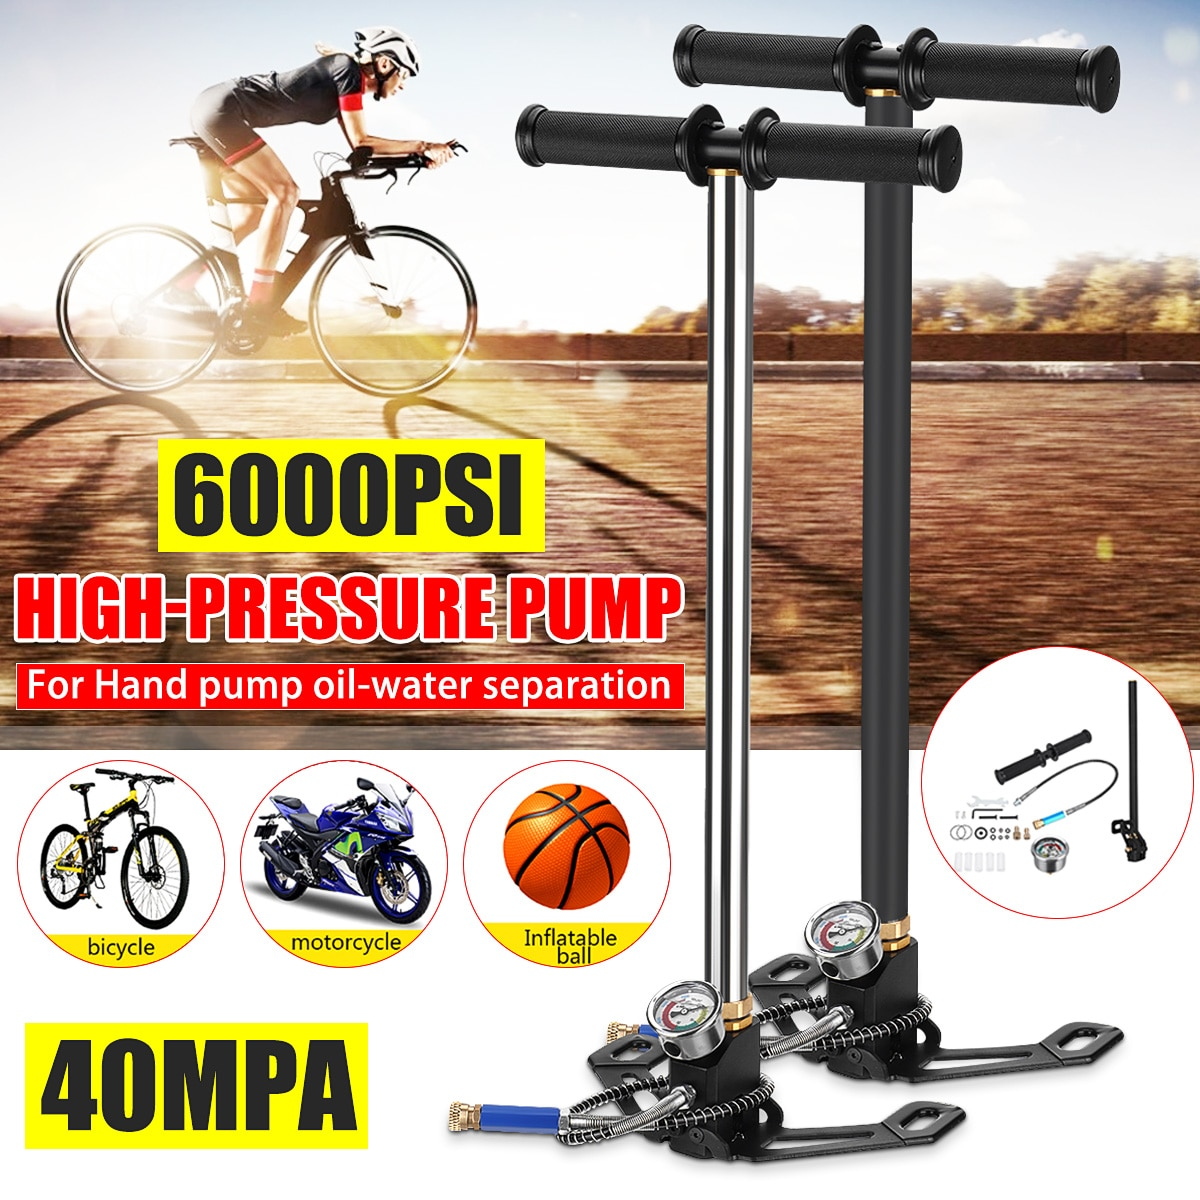 40Mpa 6000psi Air Pcp Pump Stainless Steel Foldable High Pressure Hand Pump with filter Pneumatic Pump Stirrup Pump Up To 6000Ps